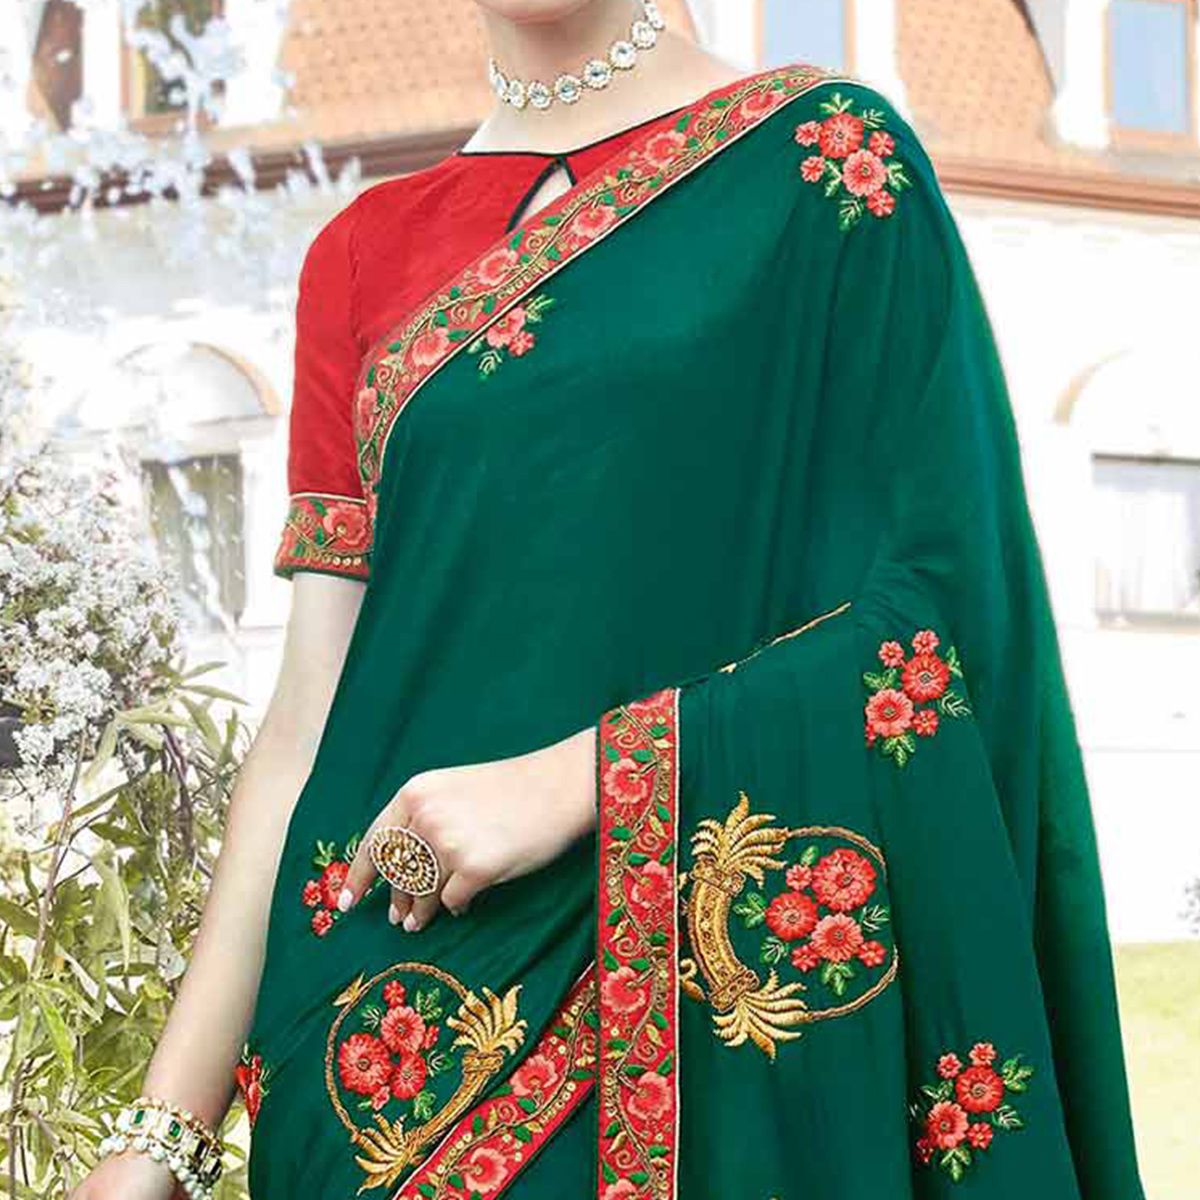 Ravishing Teal Green Colored Partywear Embroidered Silk Saree